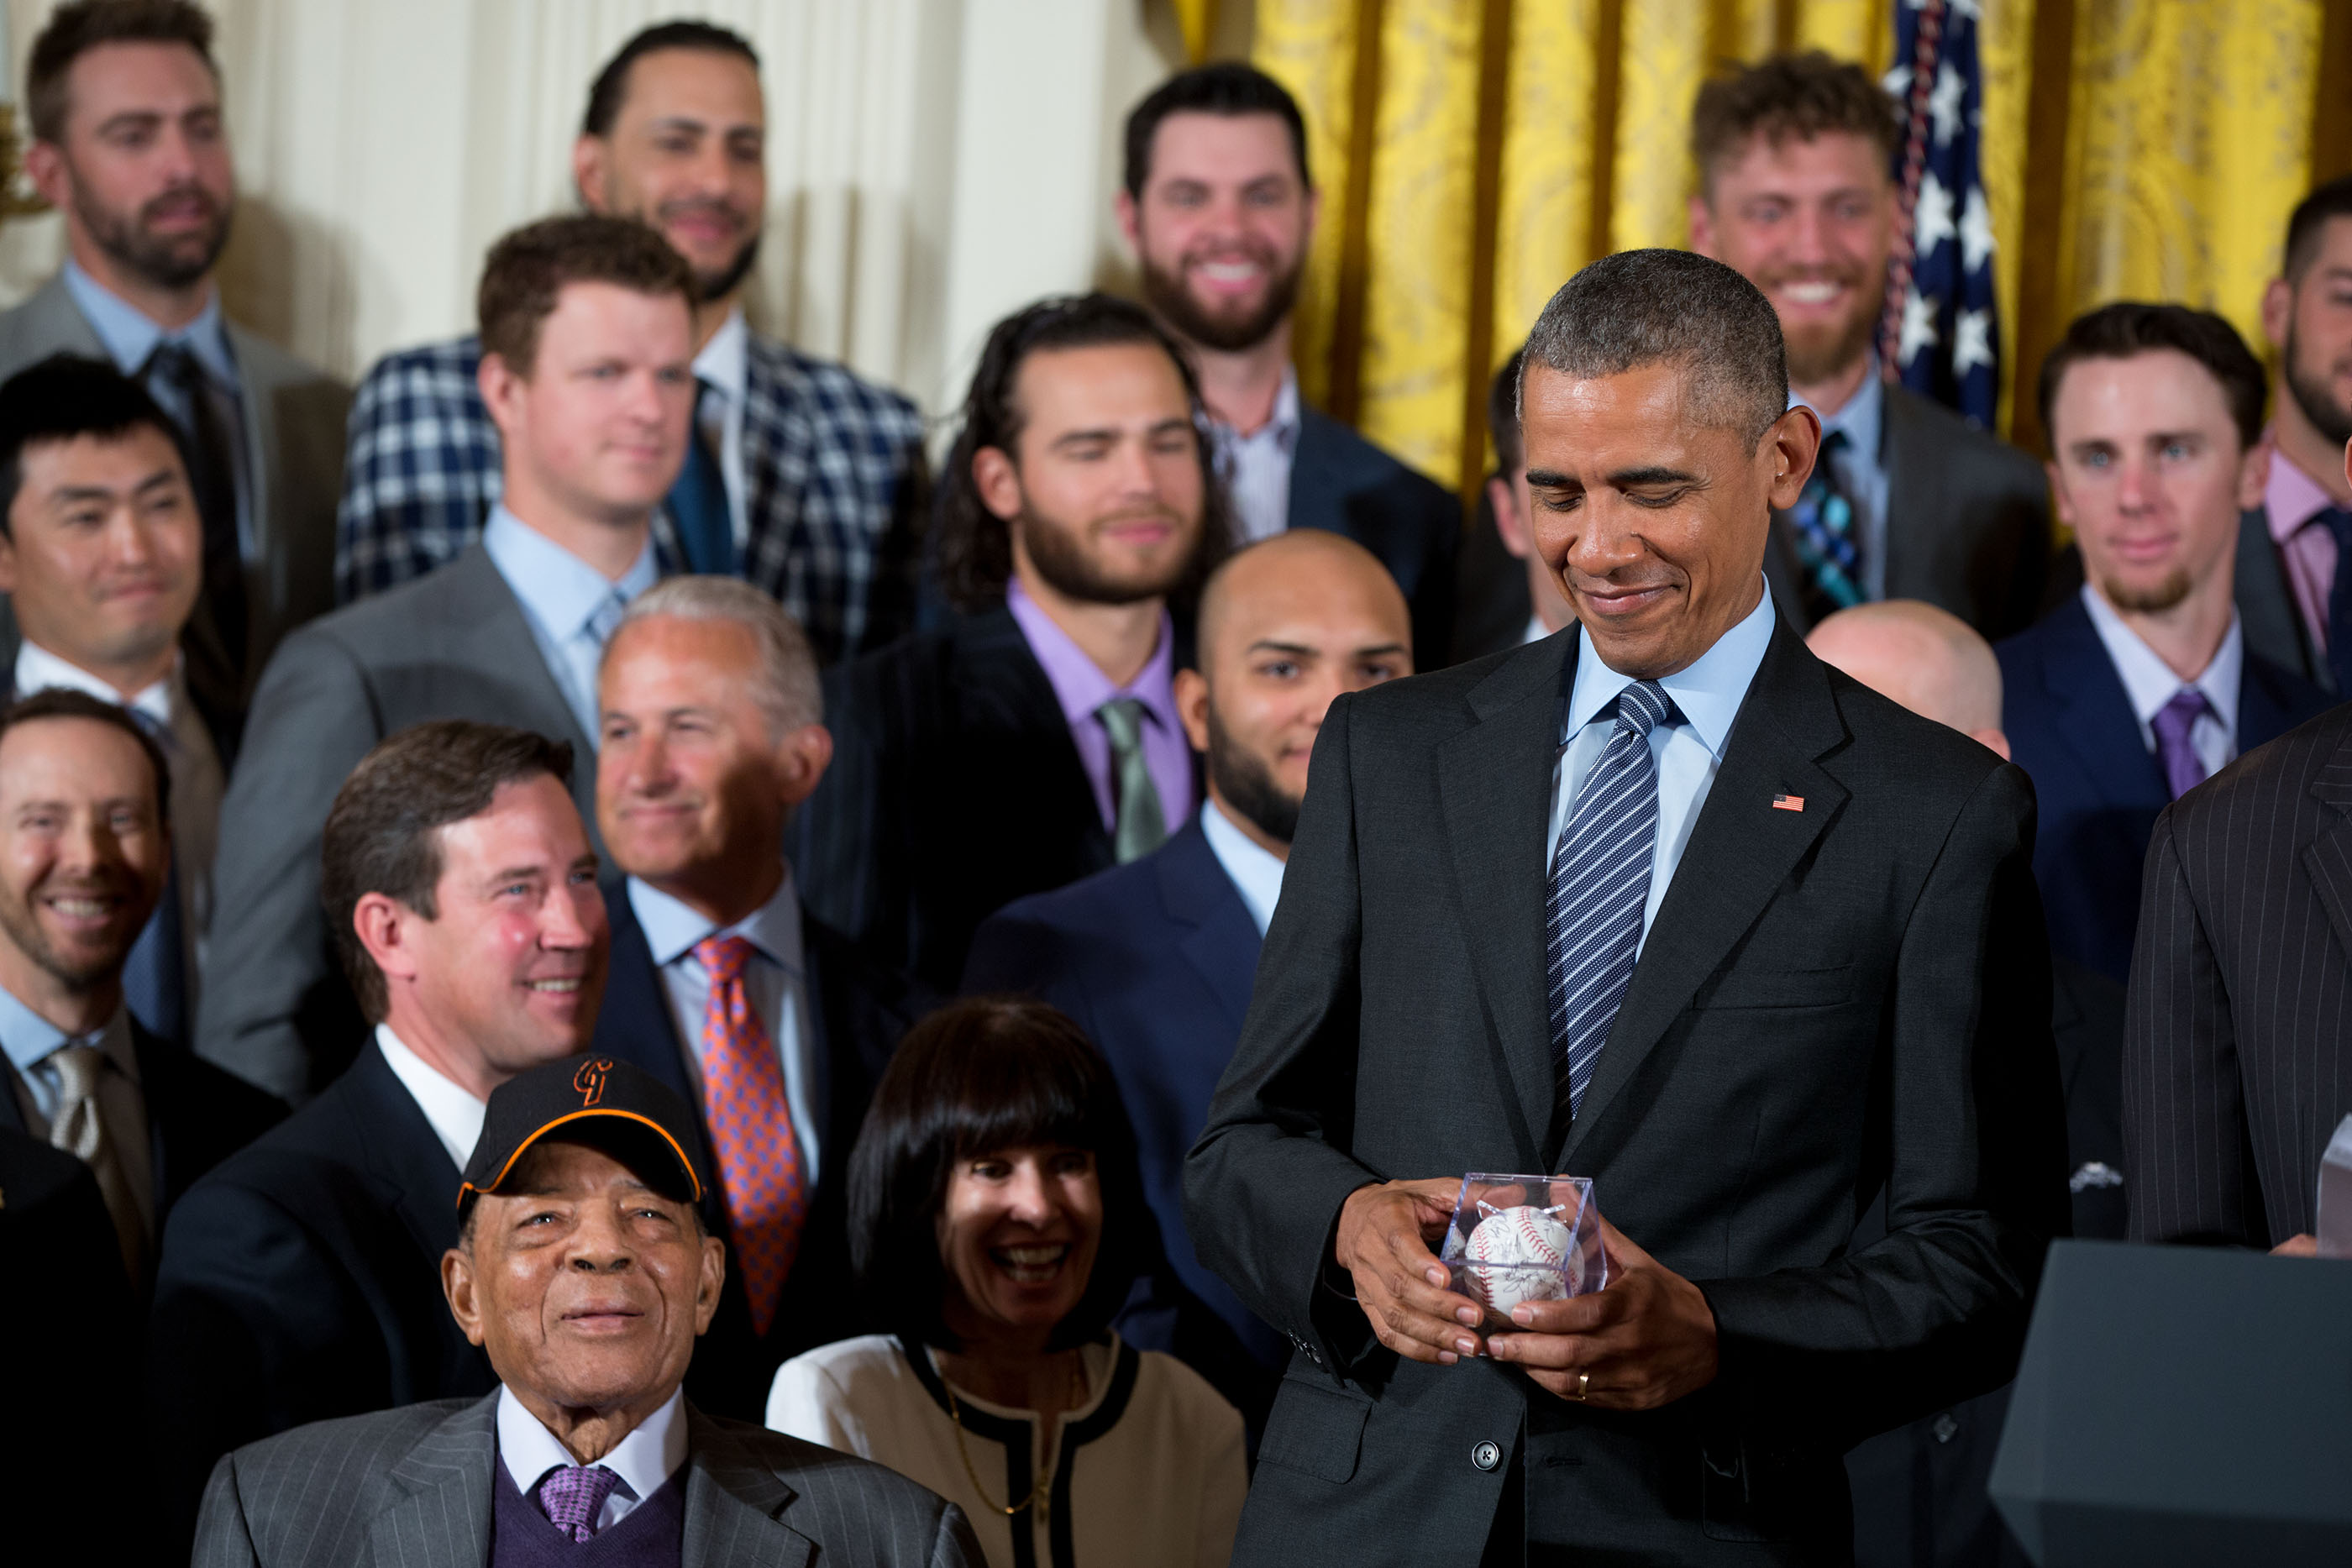 President Obama holds a Giants baseball